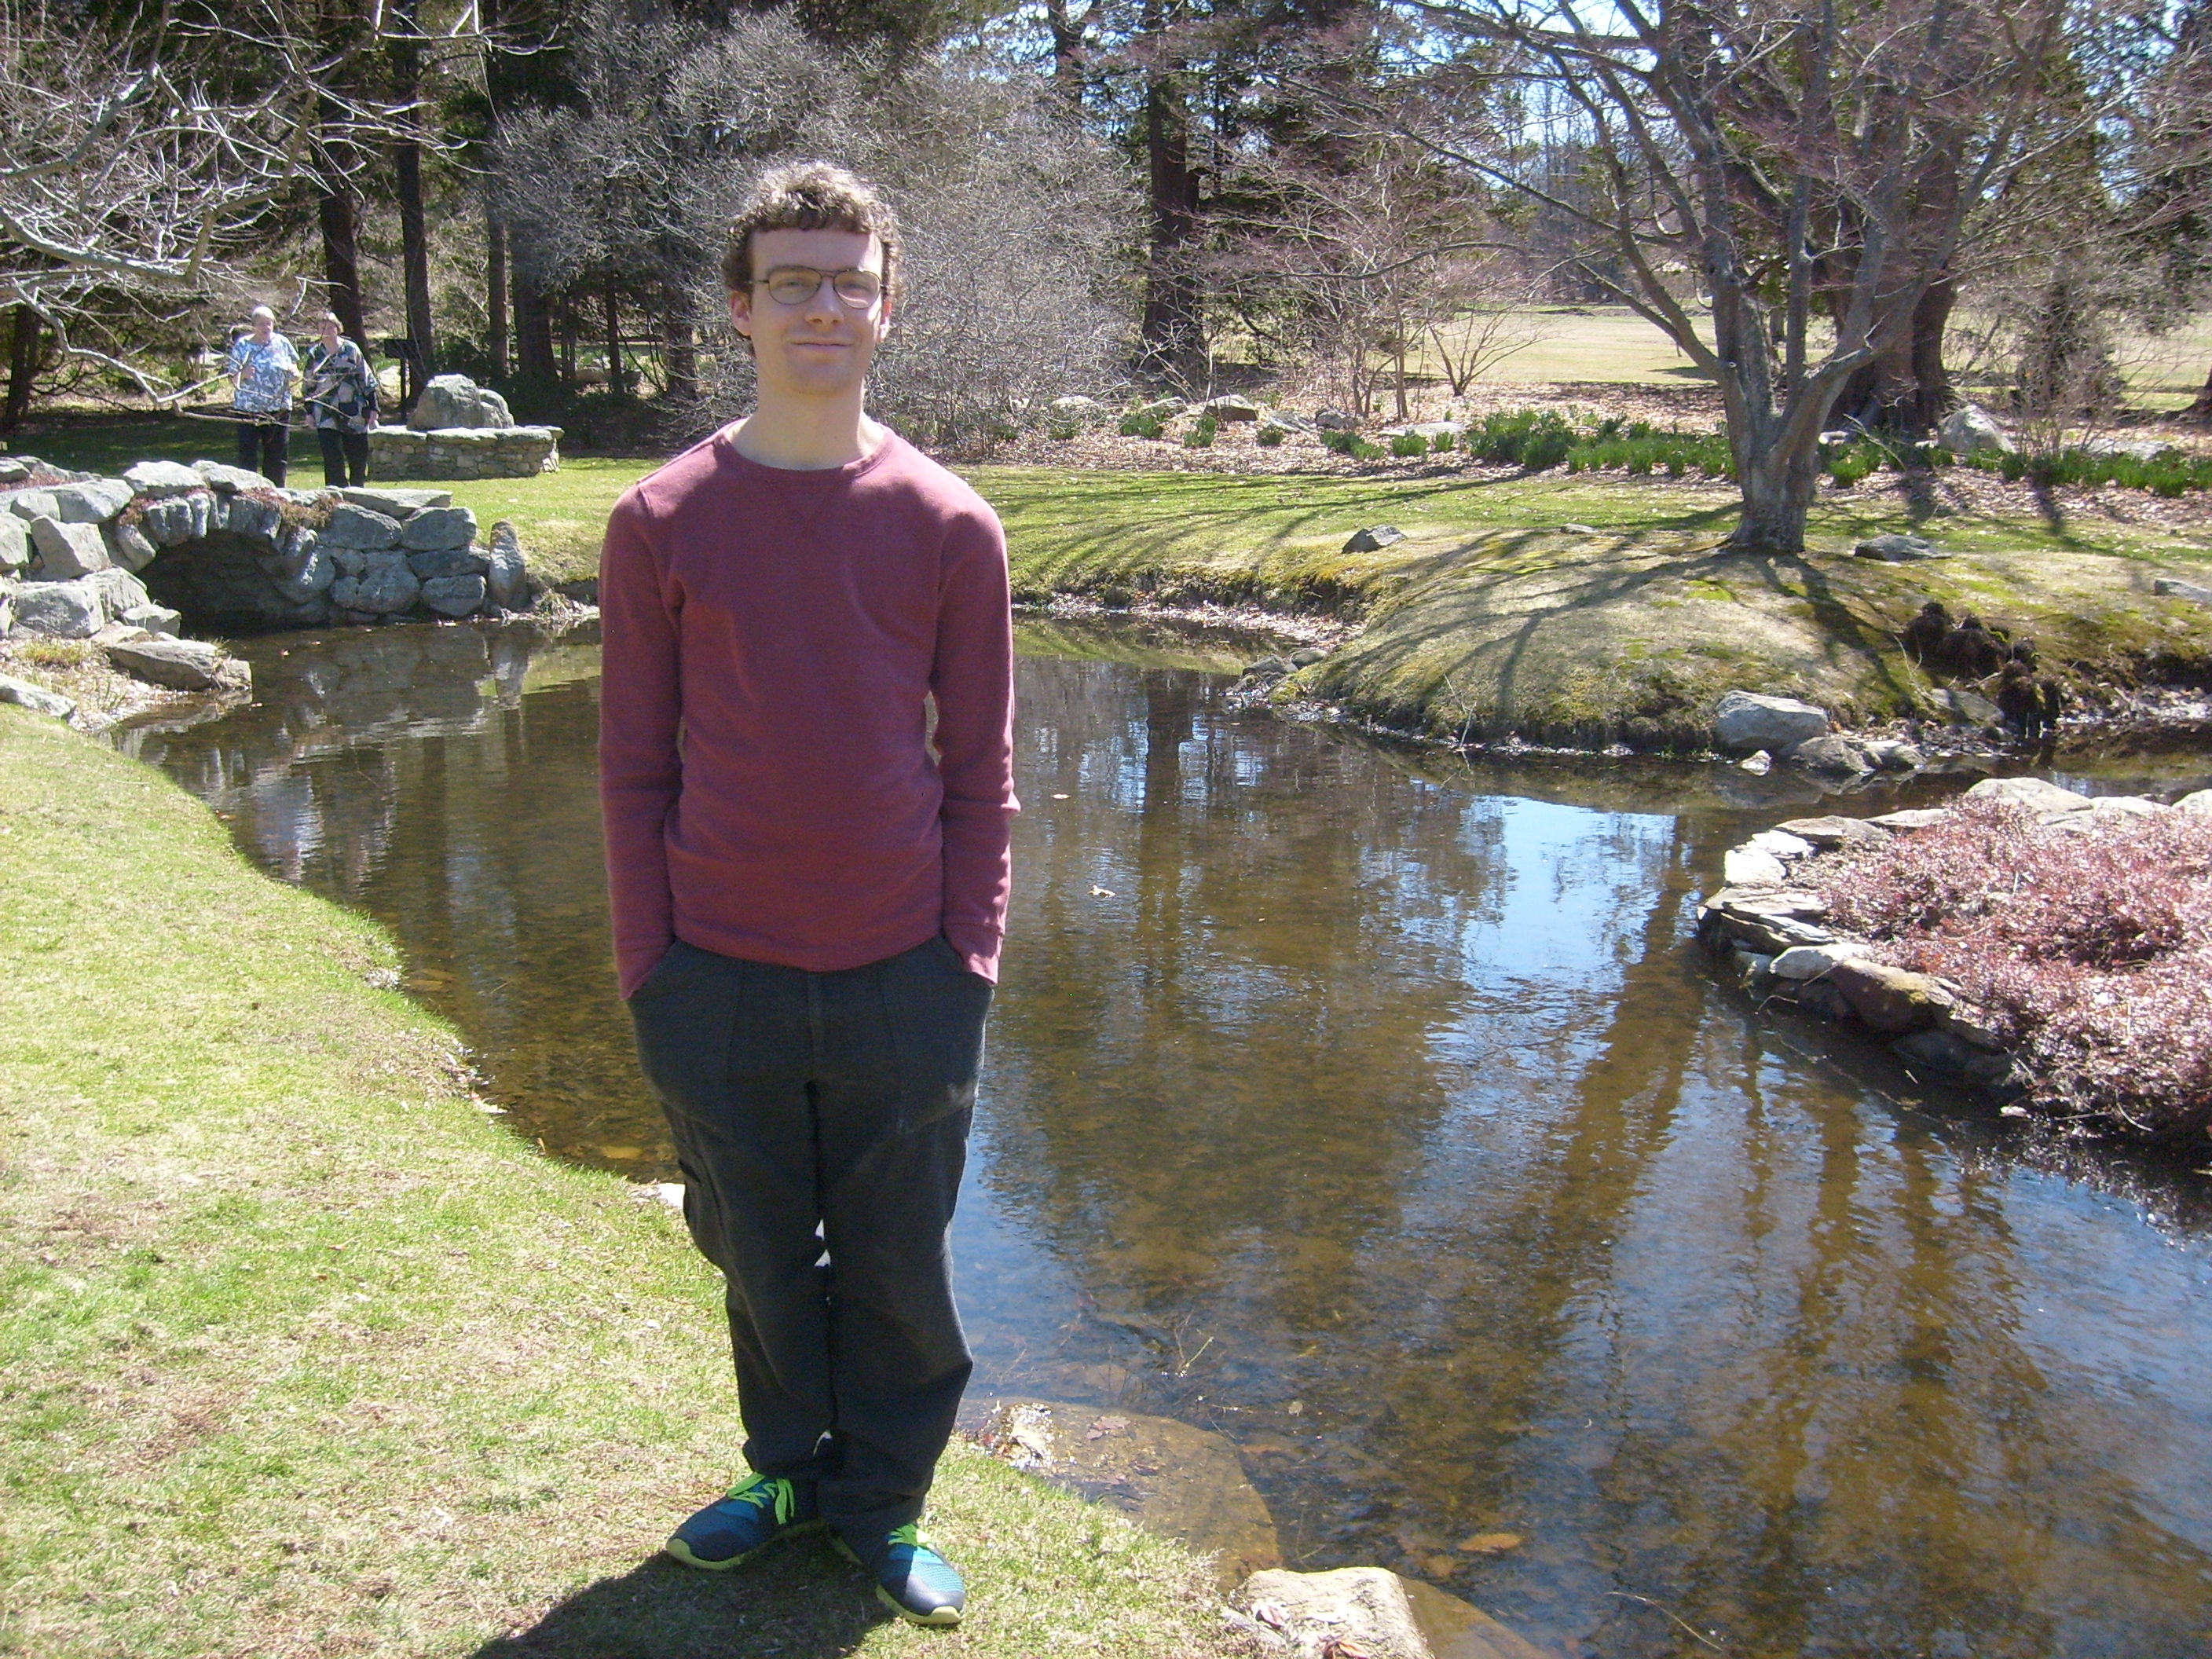 Ben by the koi pond